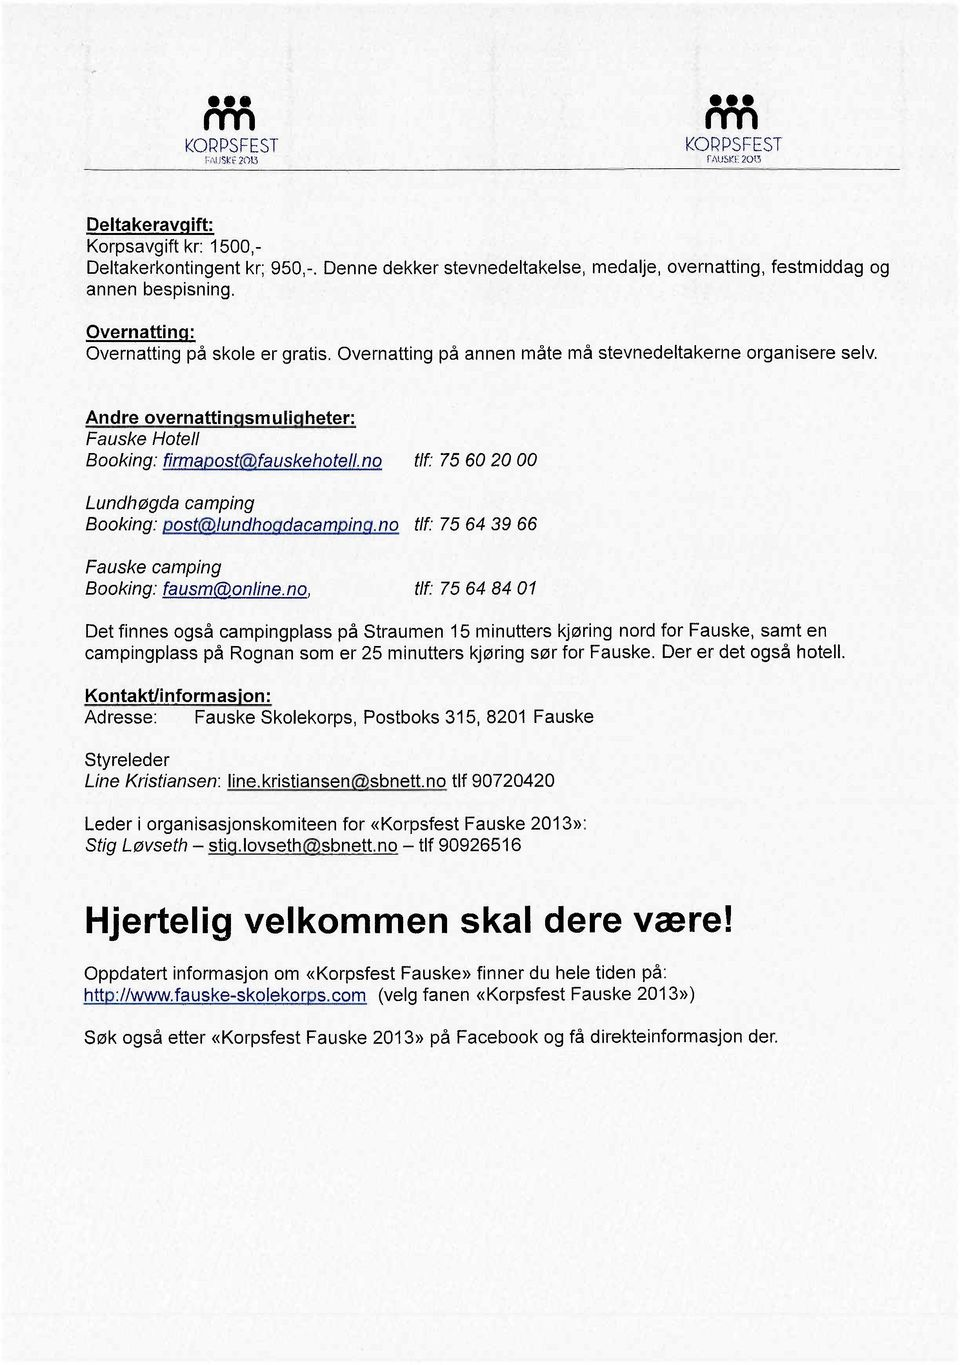 "Andre overnattingsmuligheter: Fauske Hotell Booking: firmapost(âfauskehotell.no tlf"" 75 60 20 00 Lundhøgda camping Booking: post(âlundhogdacamping."